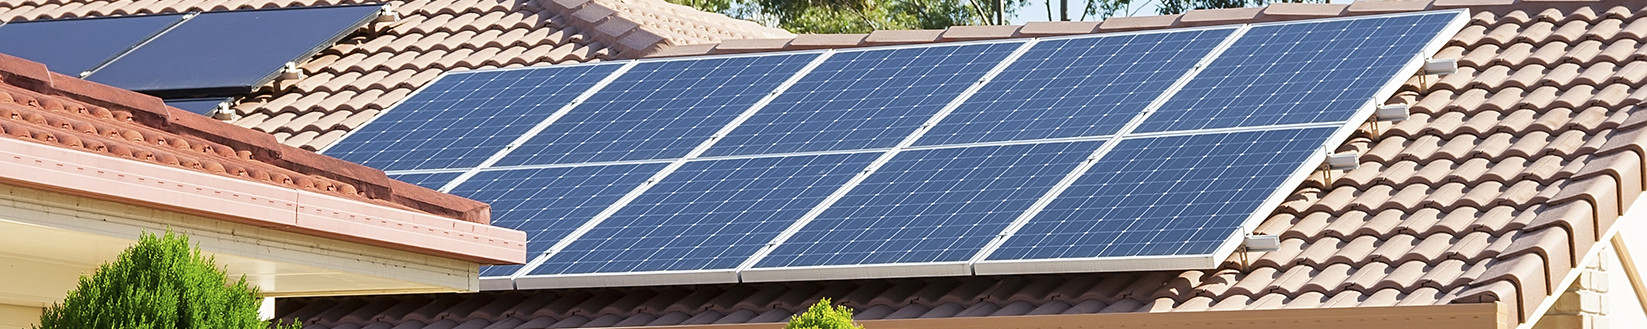 Domestic Panels Solar Panel Installation For Cost